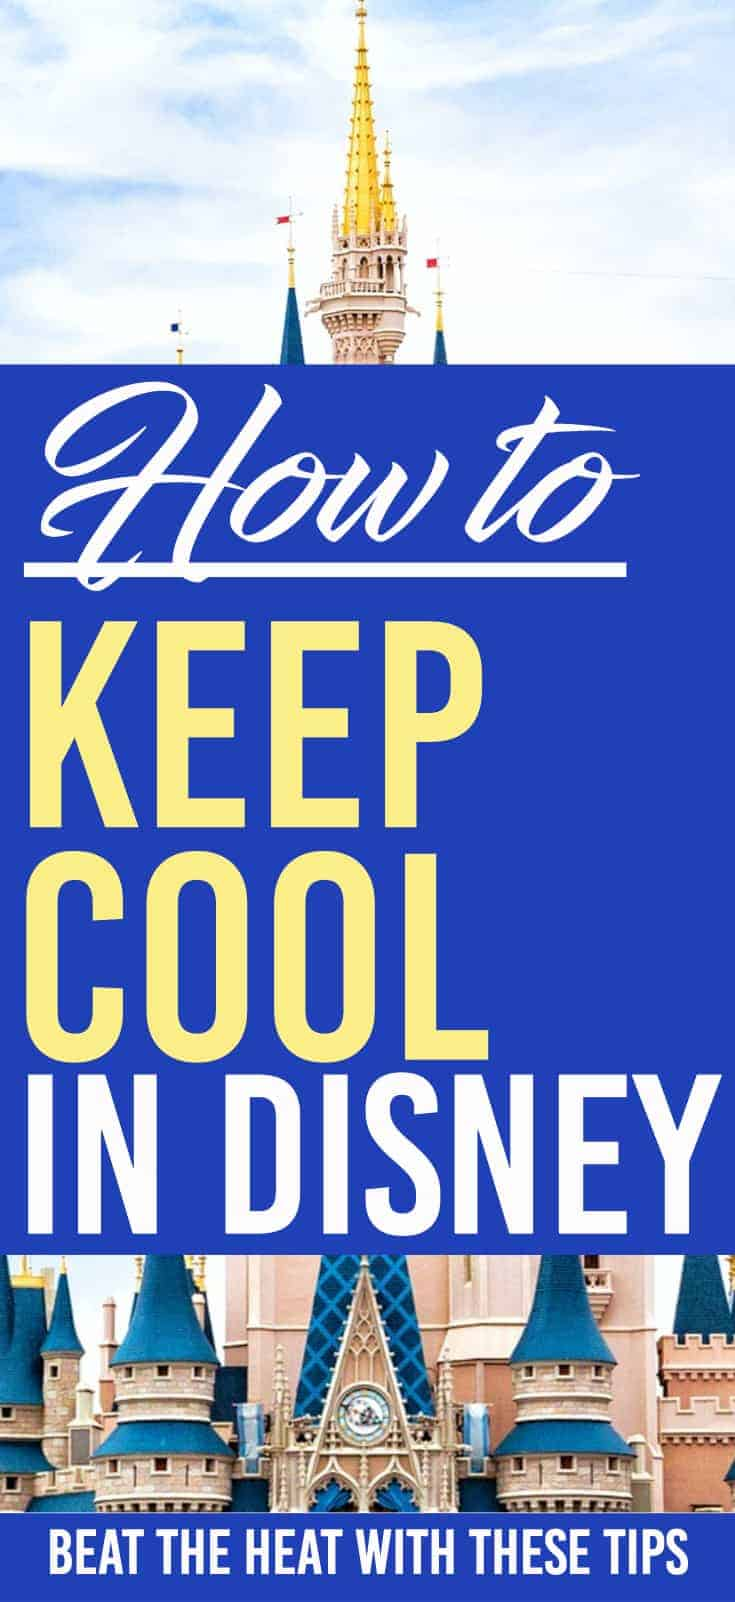 How to keep cool in Disney World. Here are some great ways to beat the heat in Walt Disney World. Going to Disney World in the summer can get hot. Luckily there are a ton of ways for you to keep cool and beat the heat.